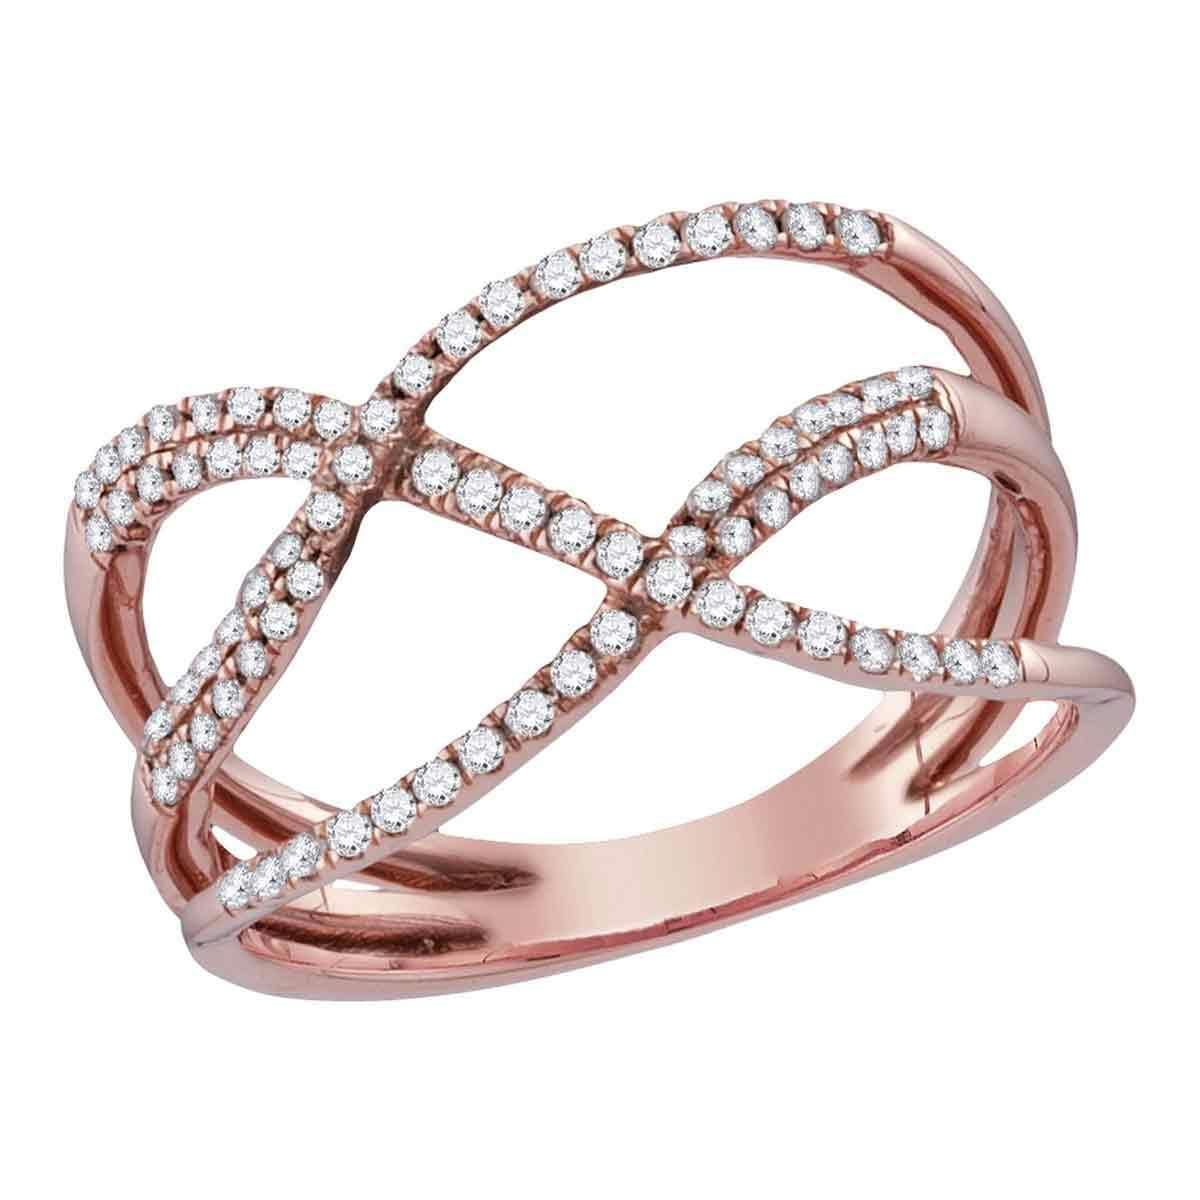 Jewels By Lux 14k White Gold Heart Ring Size 7